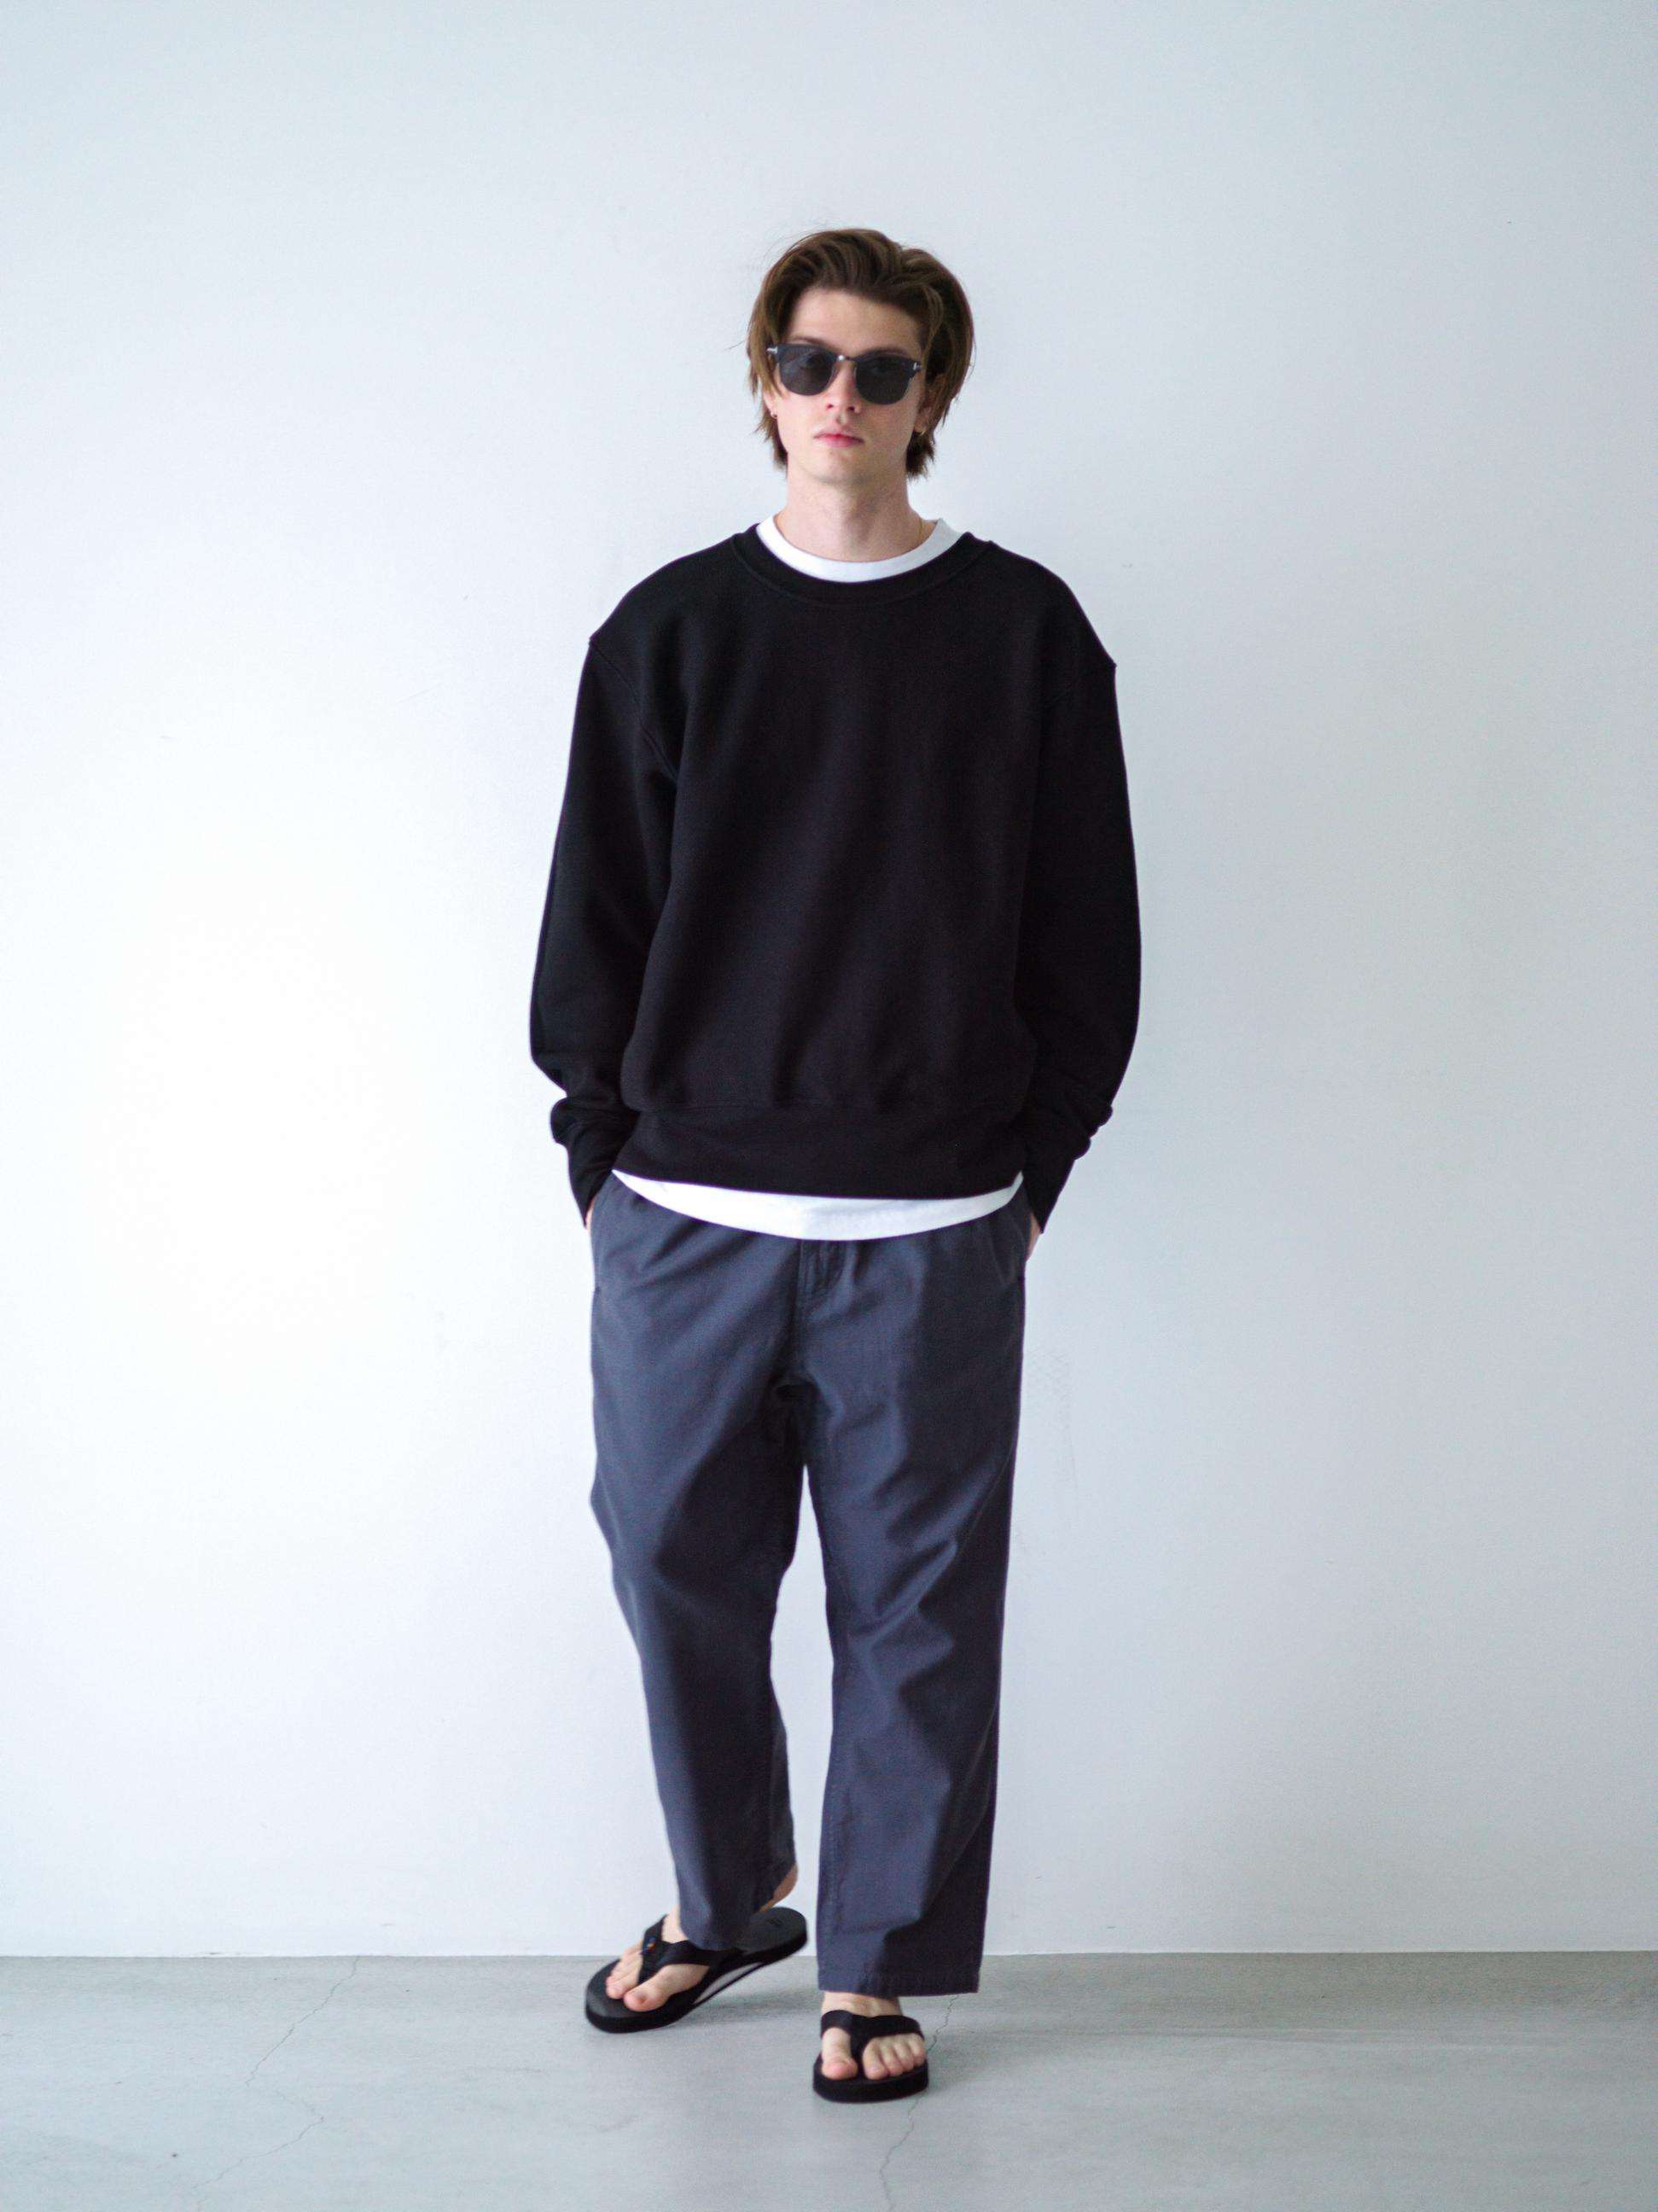 11)		